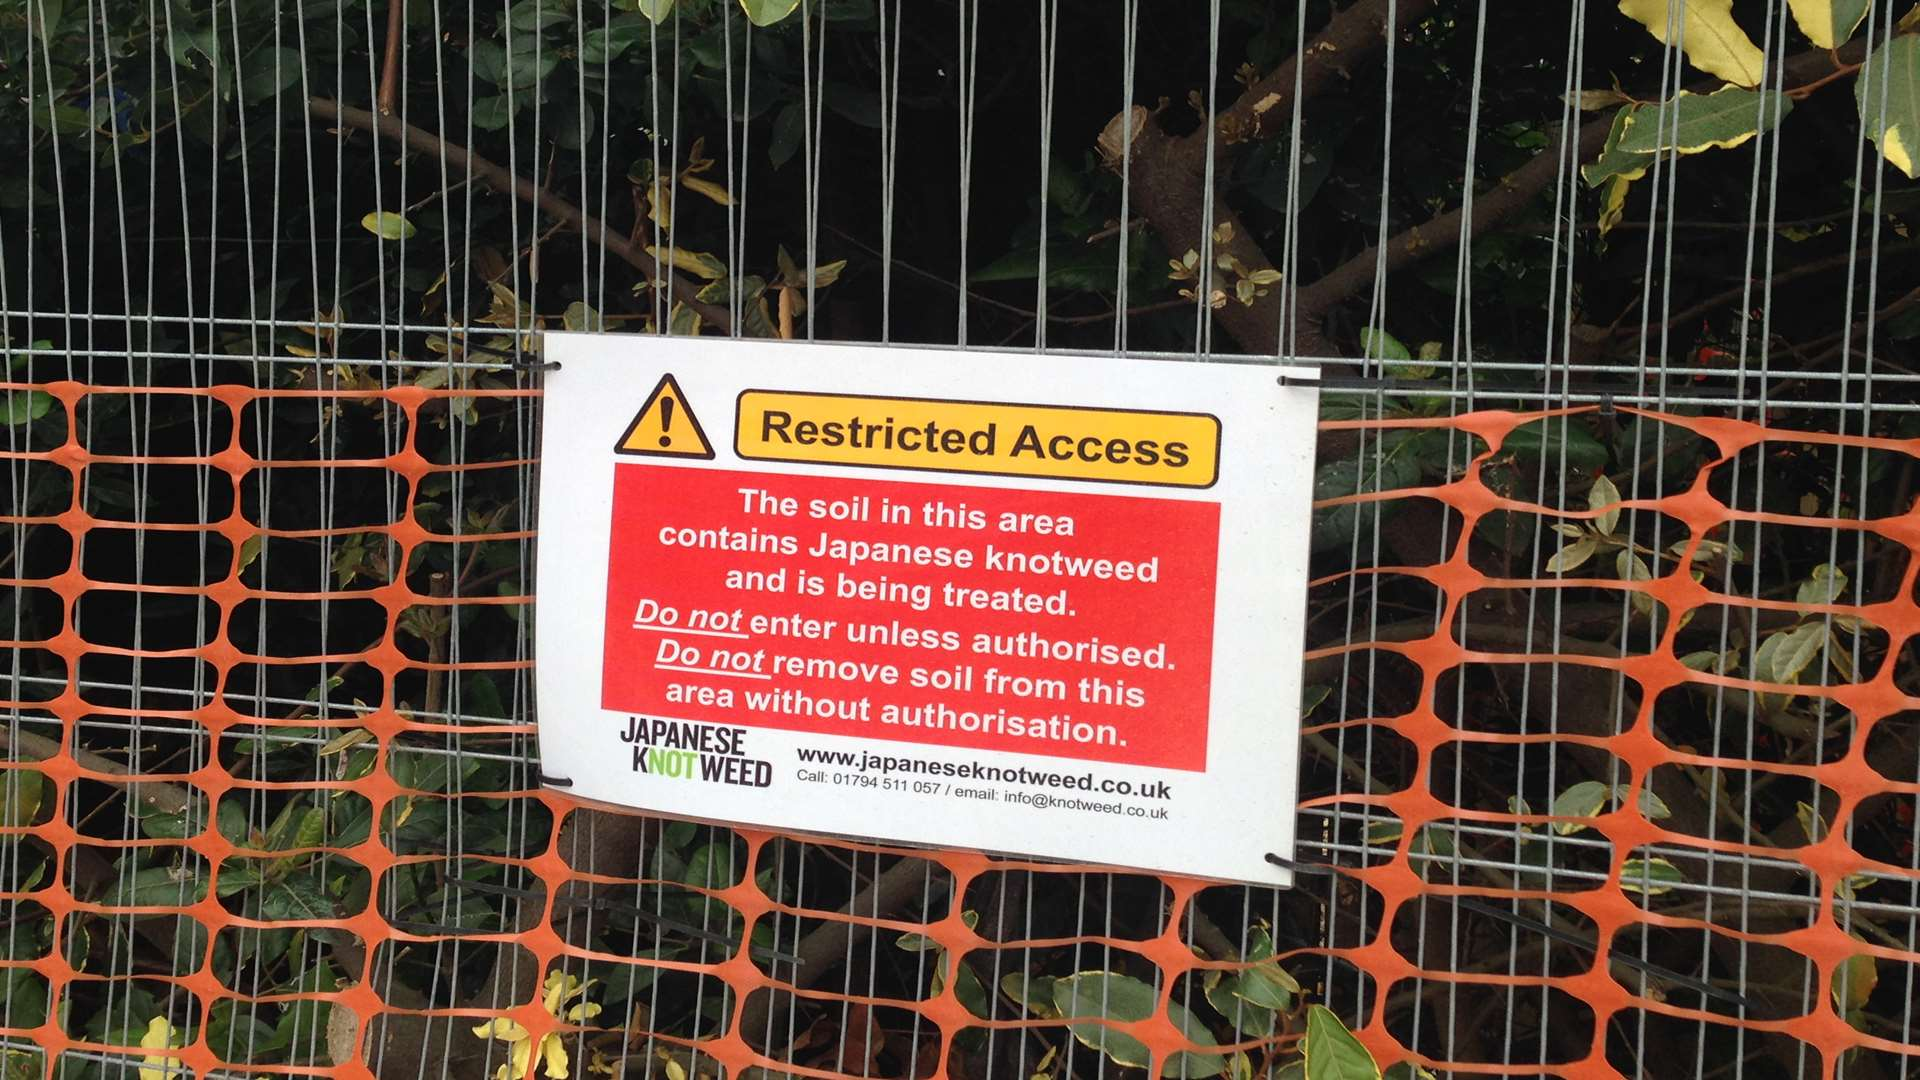 Japanese Knotweed Ltd are tackling the problem